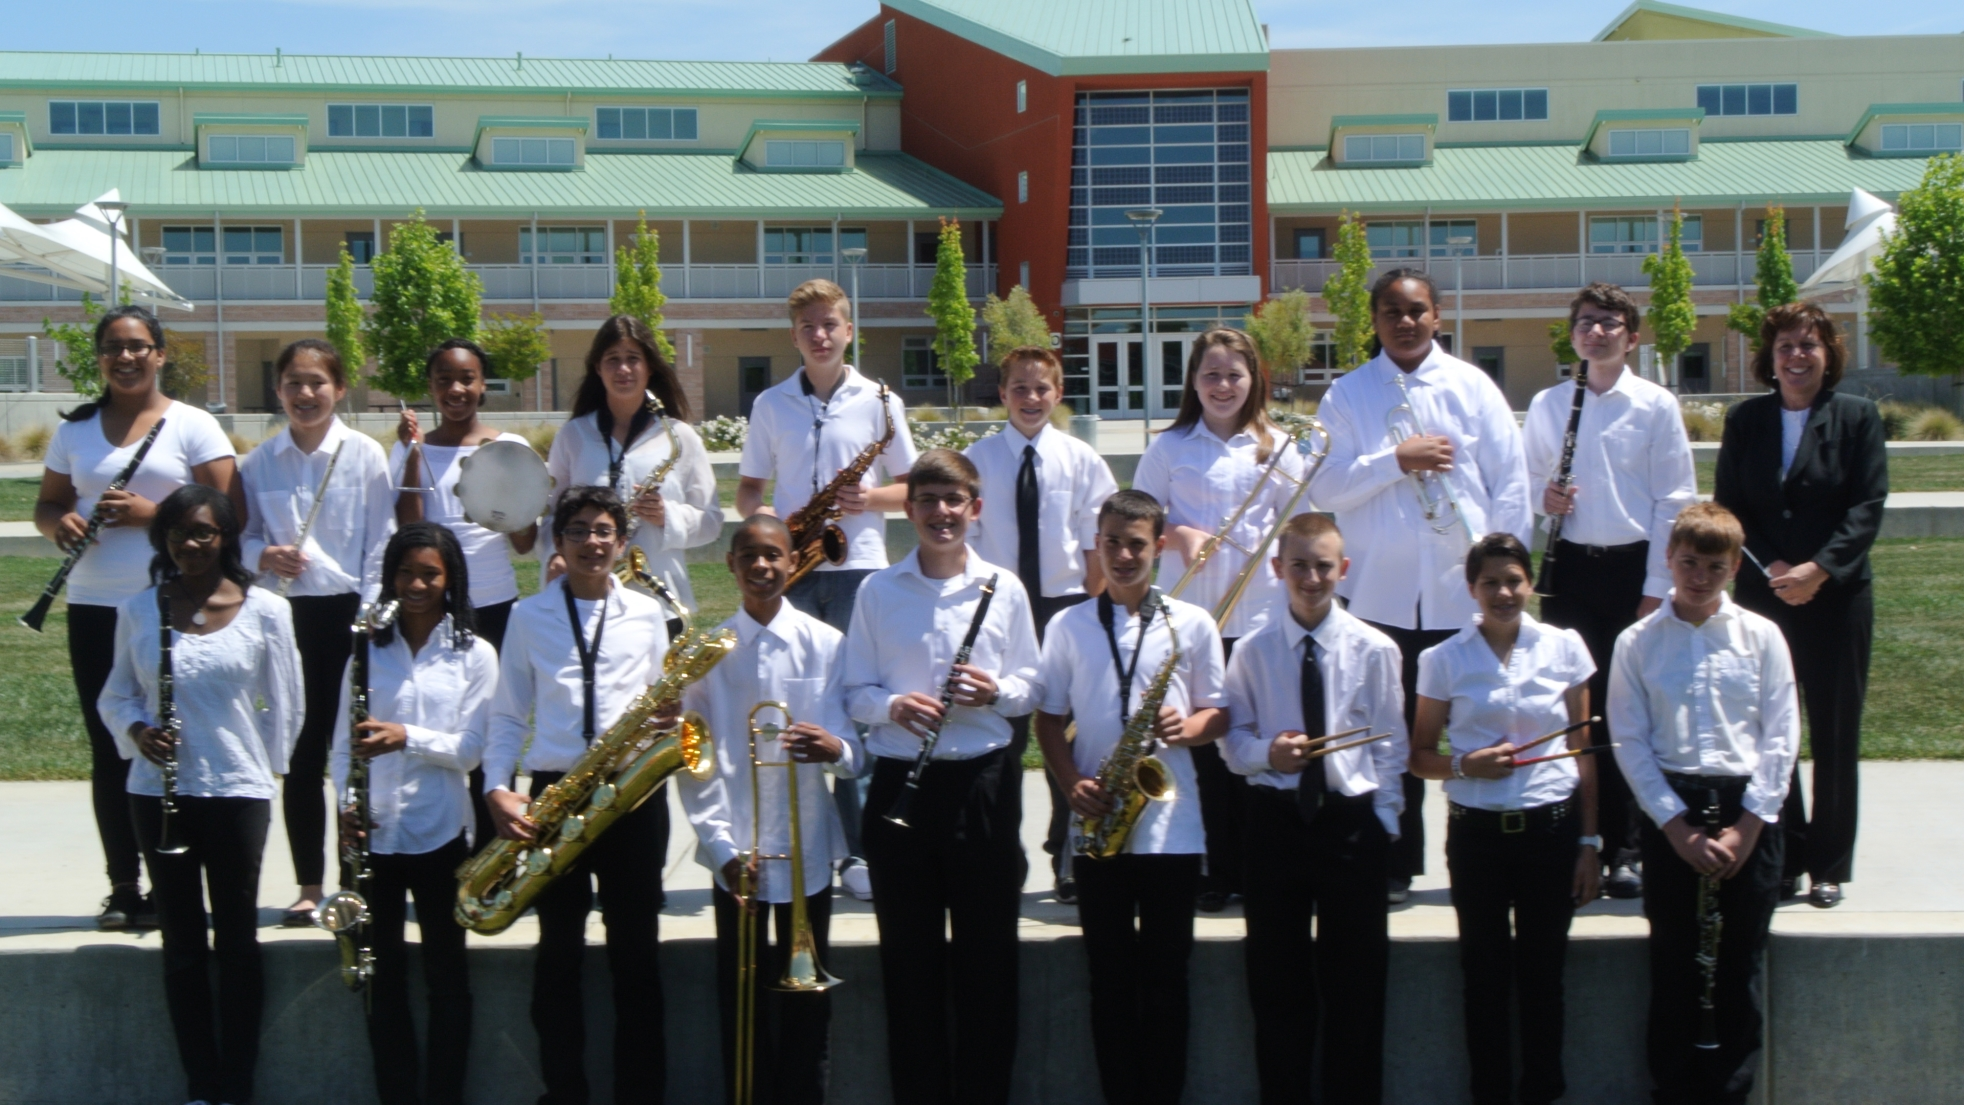 CRMS Concert Band takes 1st place at Music In The Parks on May 3rd